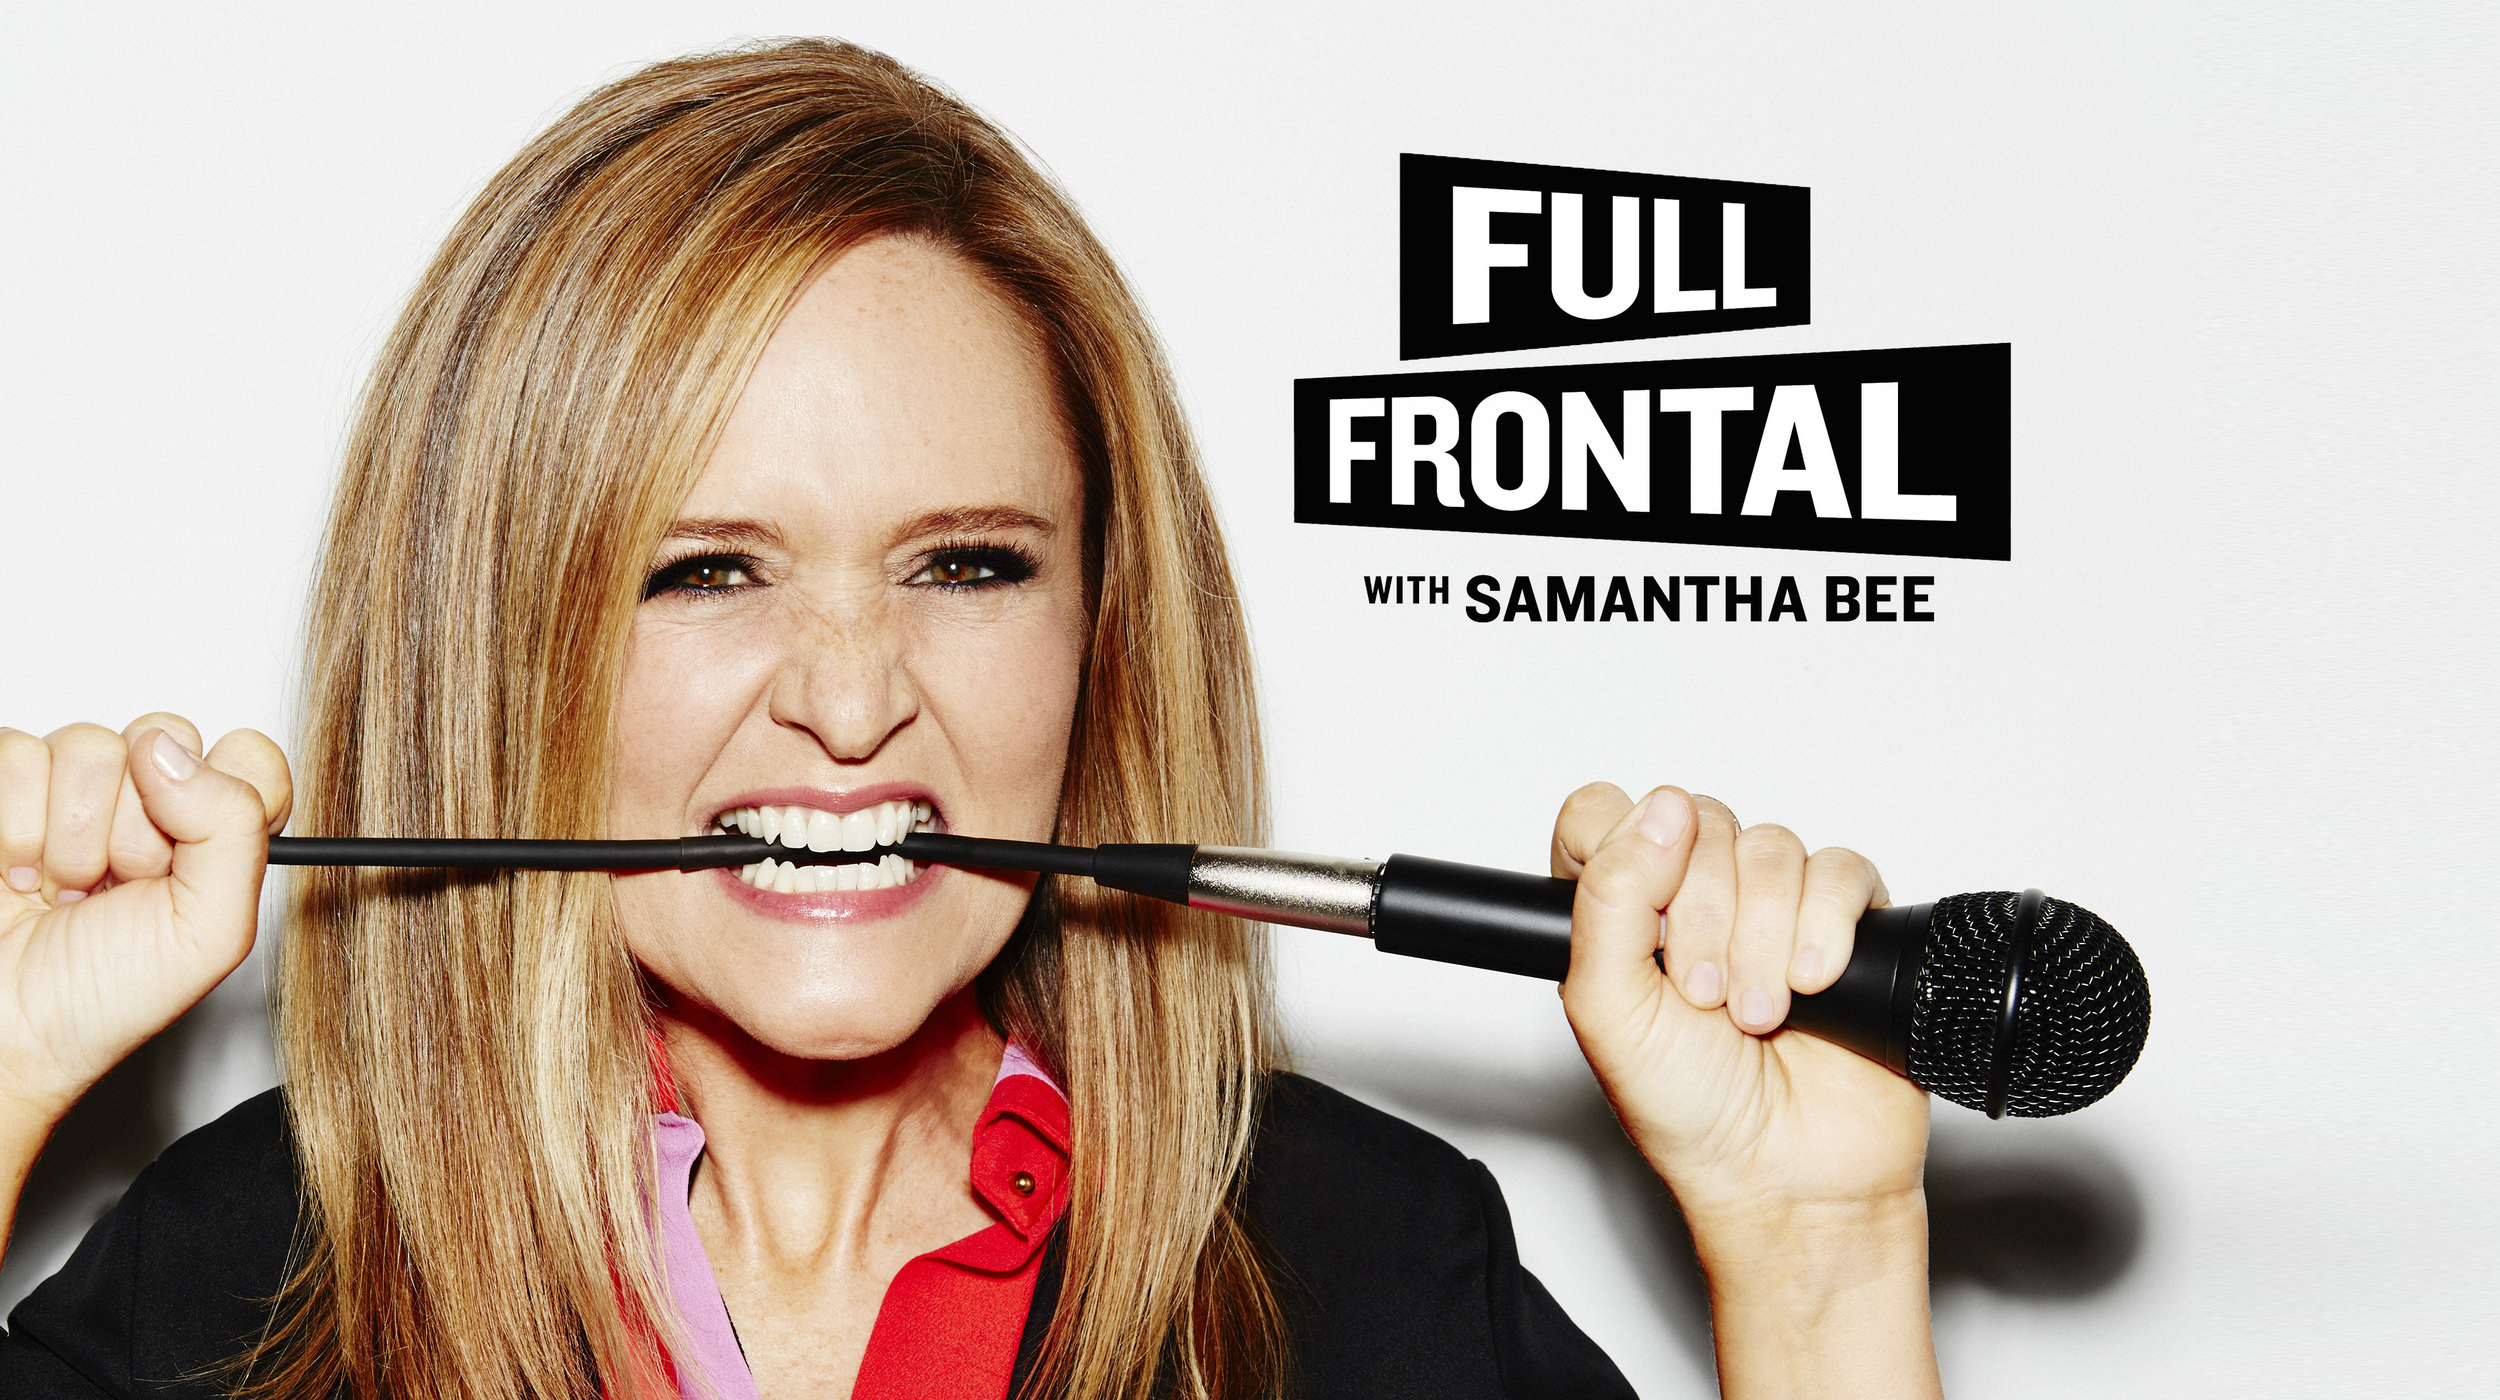 Comedy Central / Samantha Bee